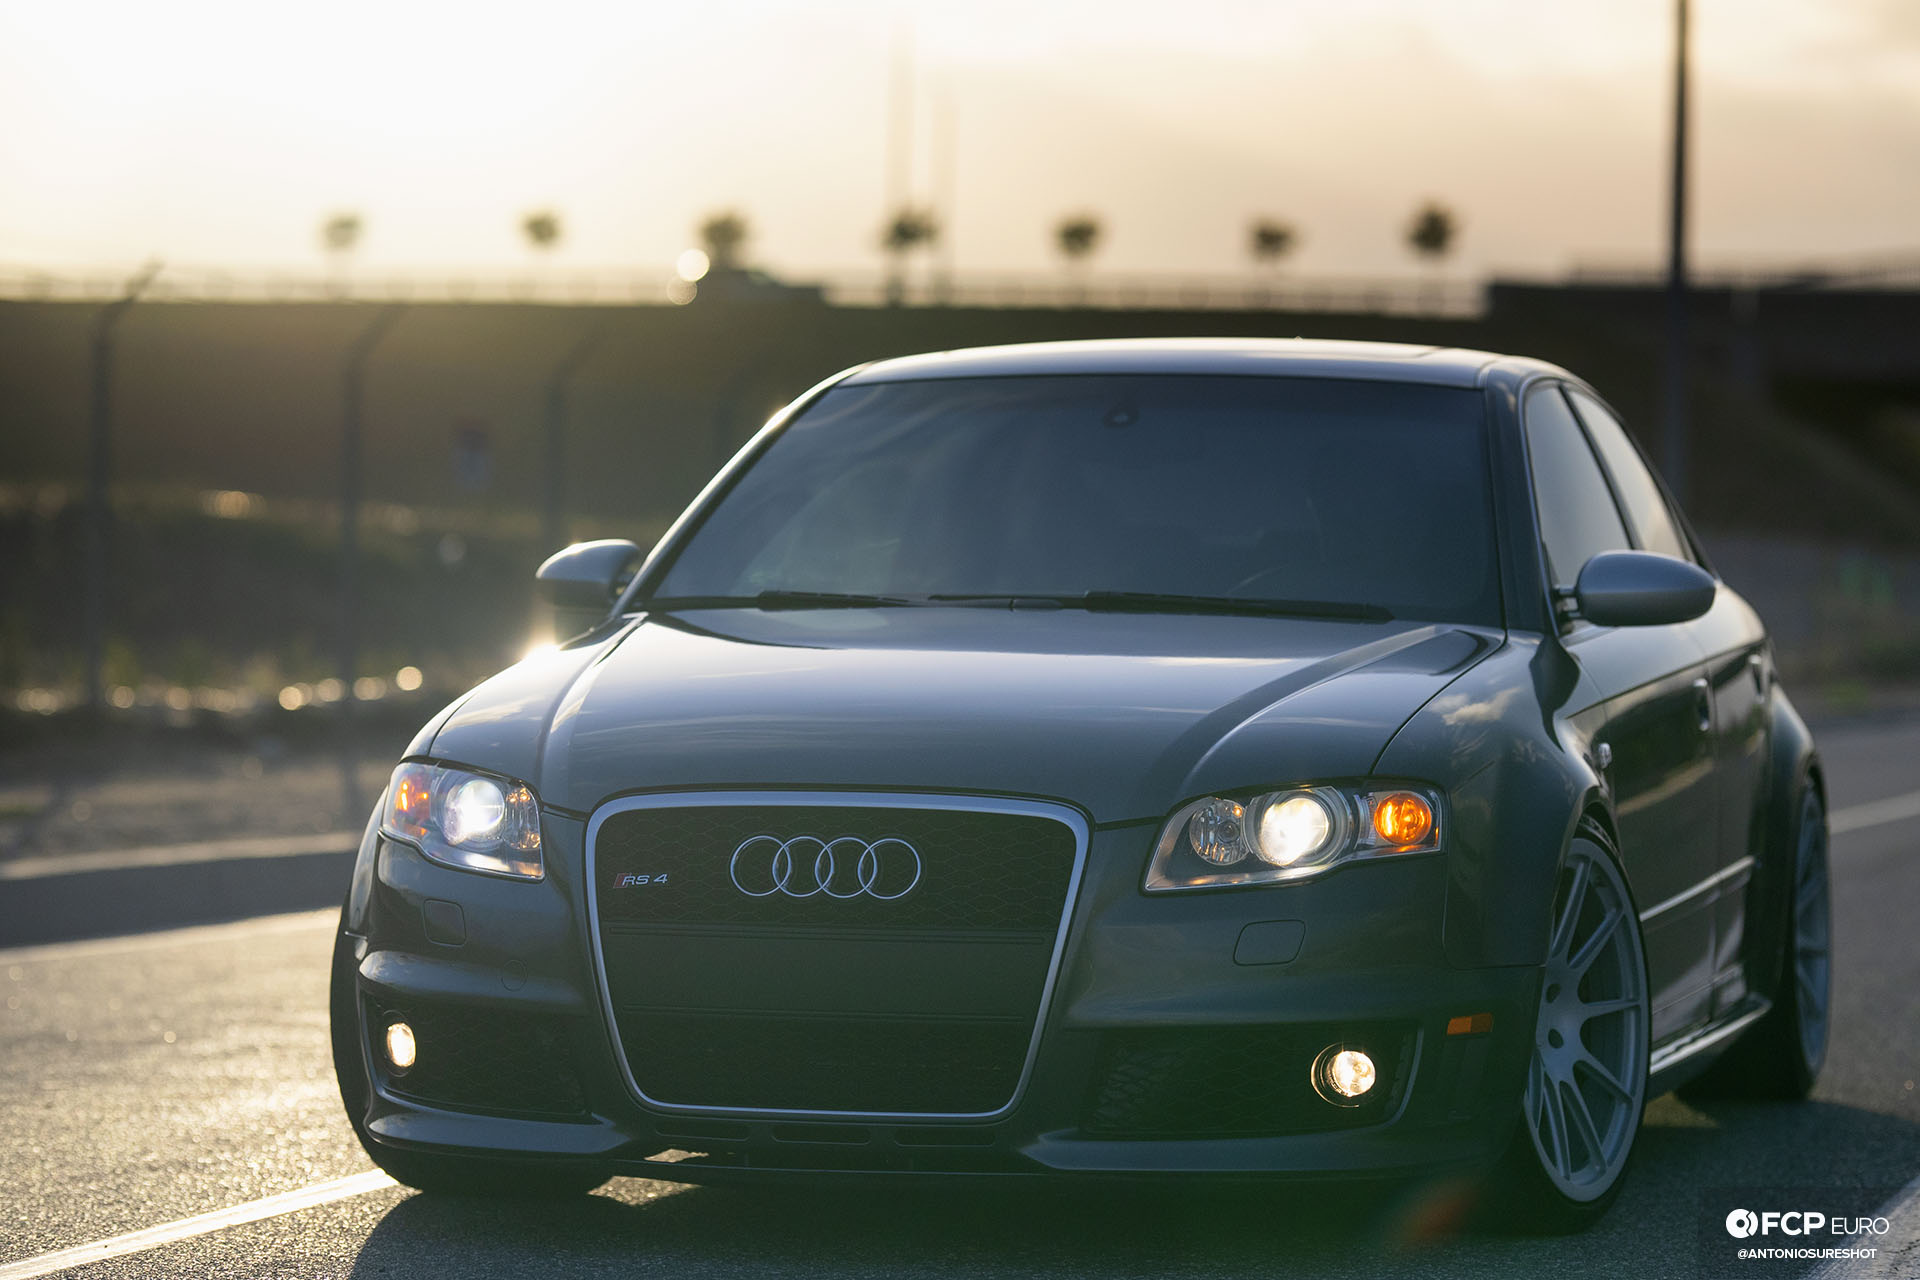 B7 Audi RS4 front shot with lights on